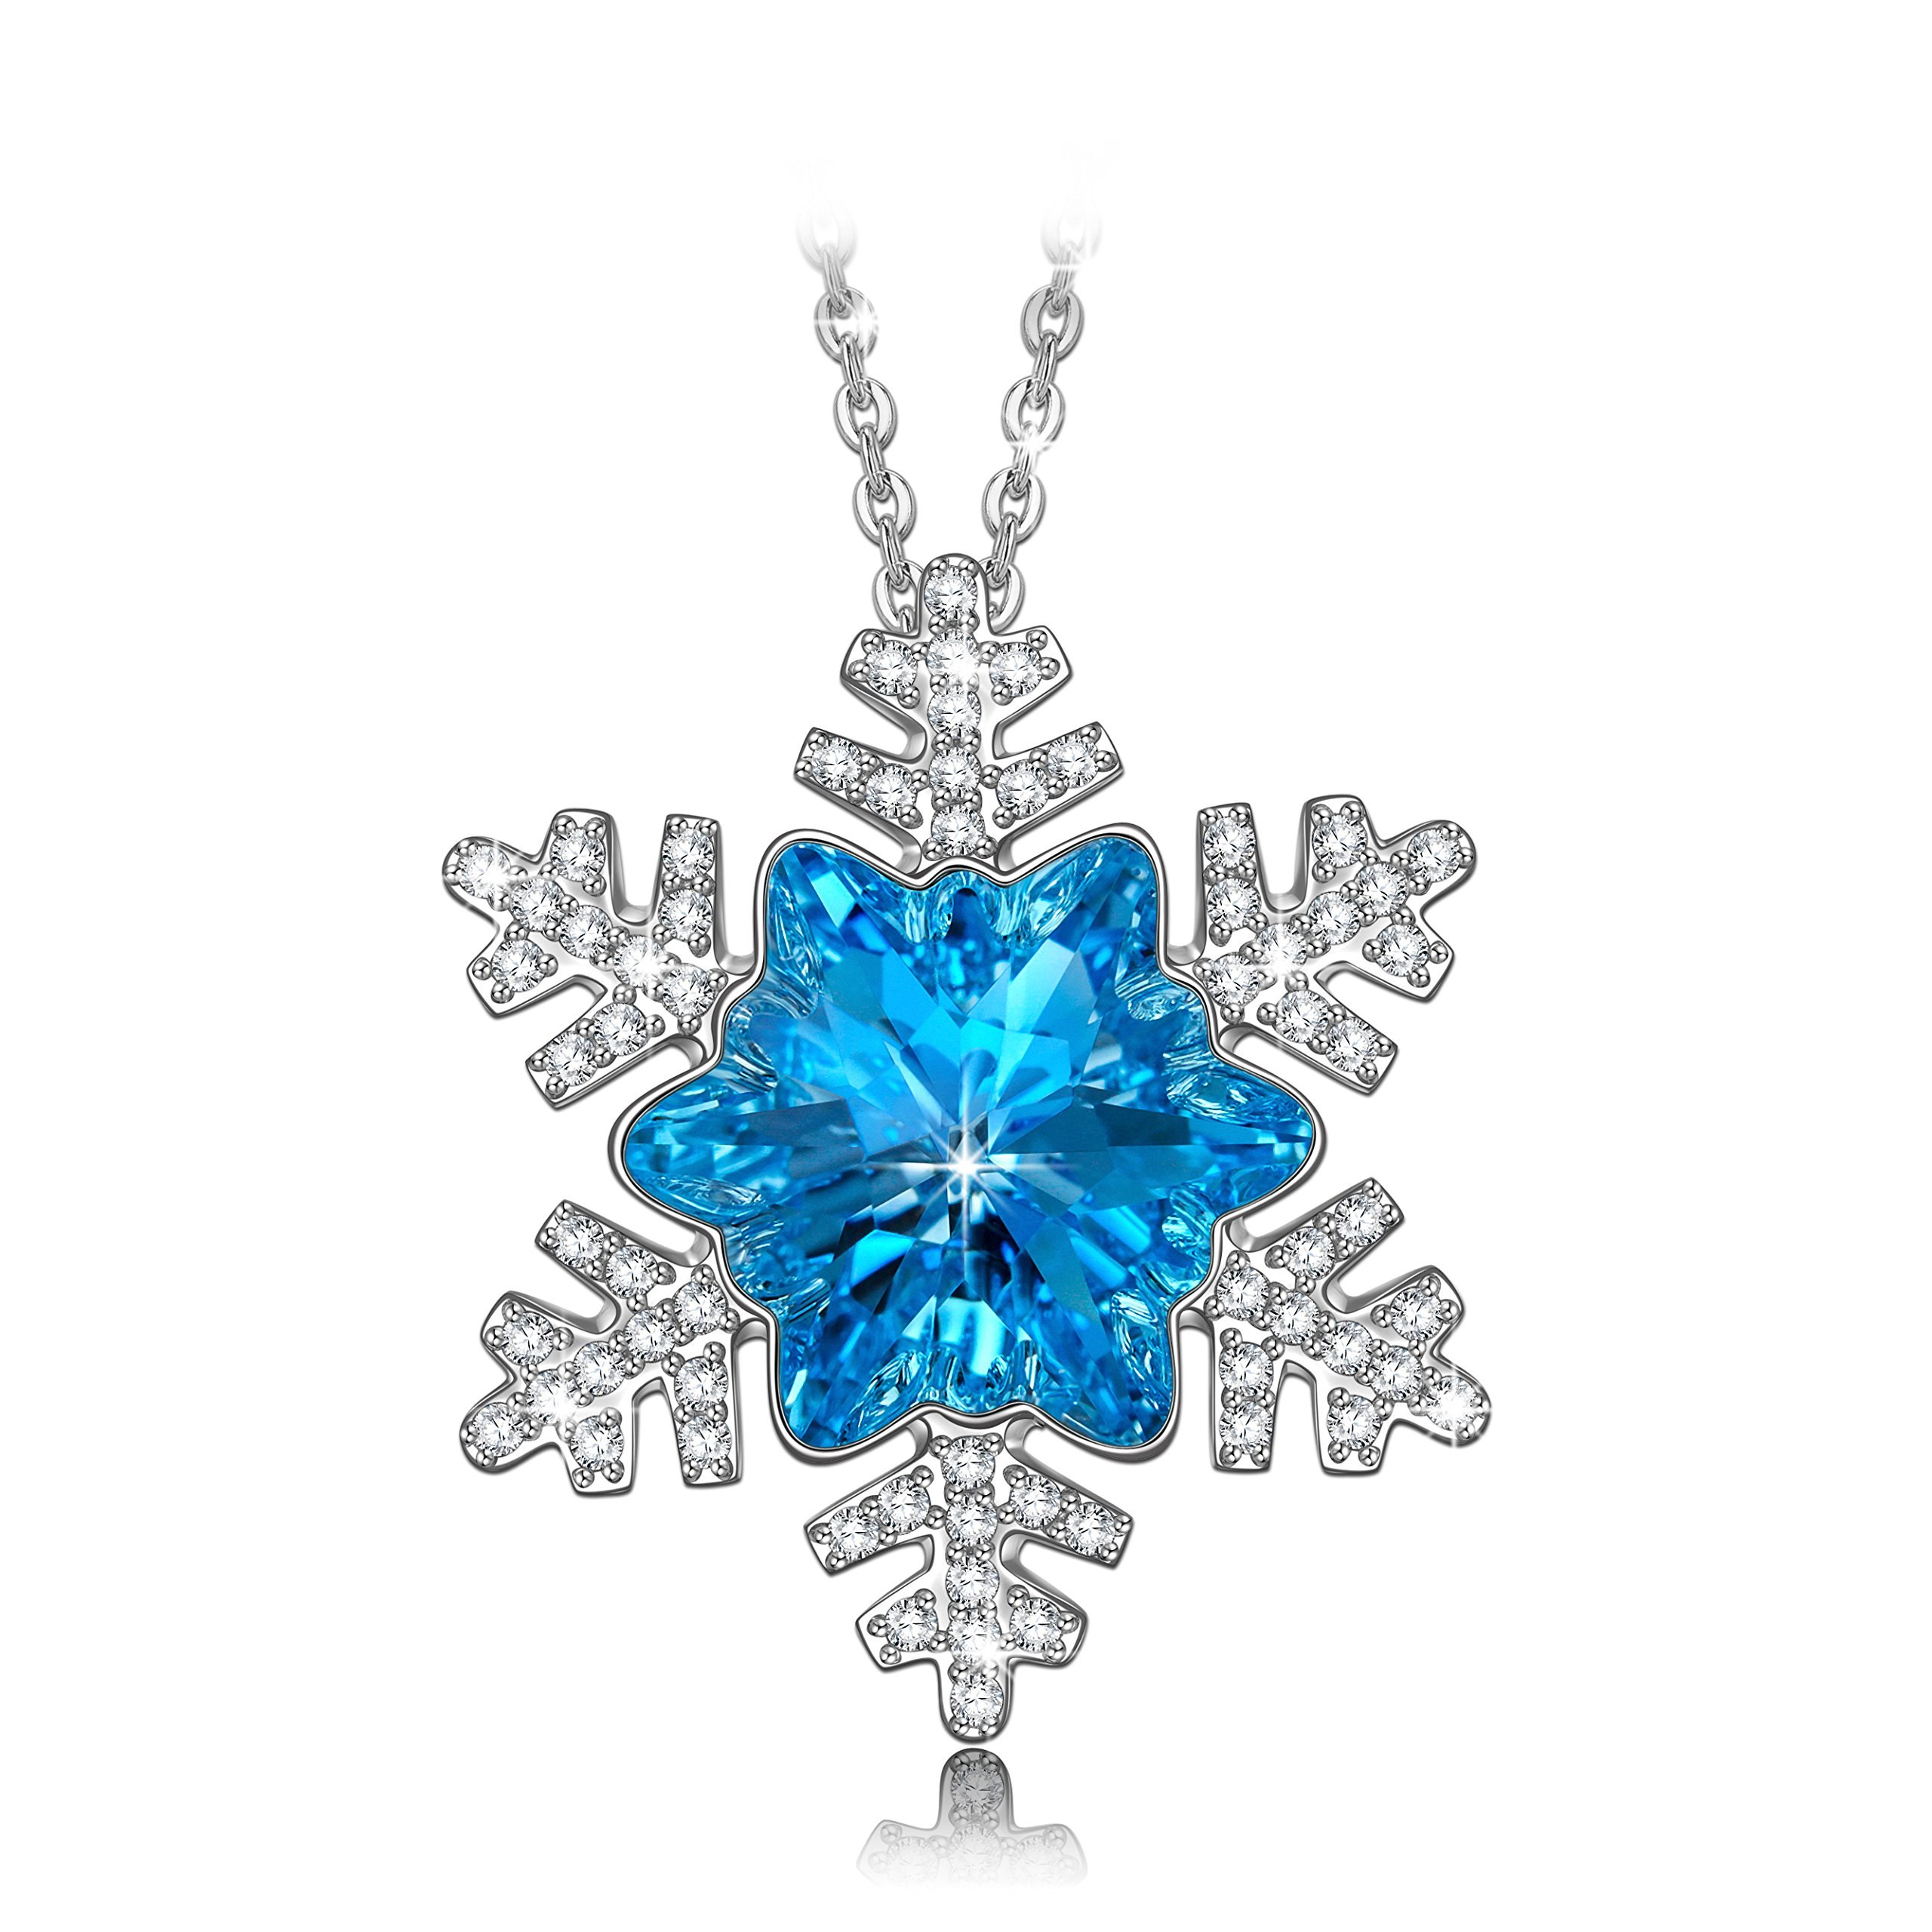 NINASUN Frozen Gifts for Her Necklace Fine Jewelry s925 Sterling Silver Necklace Pendant Swarovski Crystal Snowflake Jewelry Blue Birthday Gift from for Women Mom Grandma Girls Jewelry for Daughter